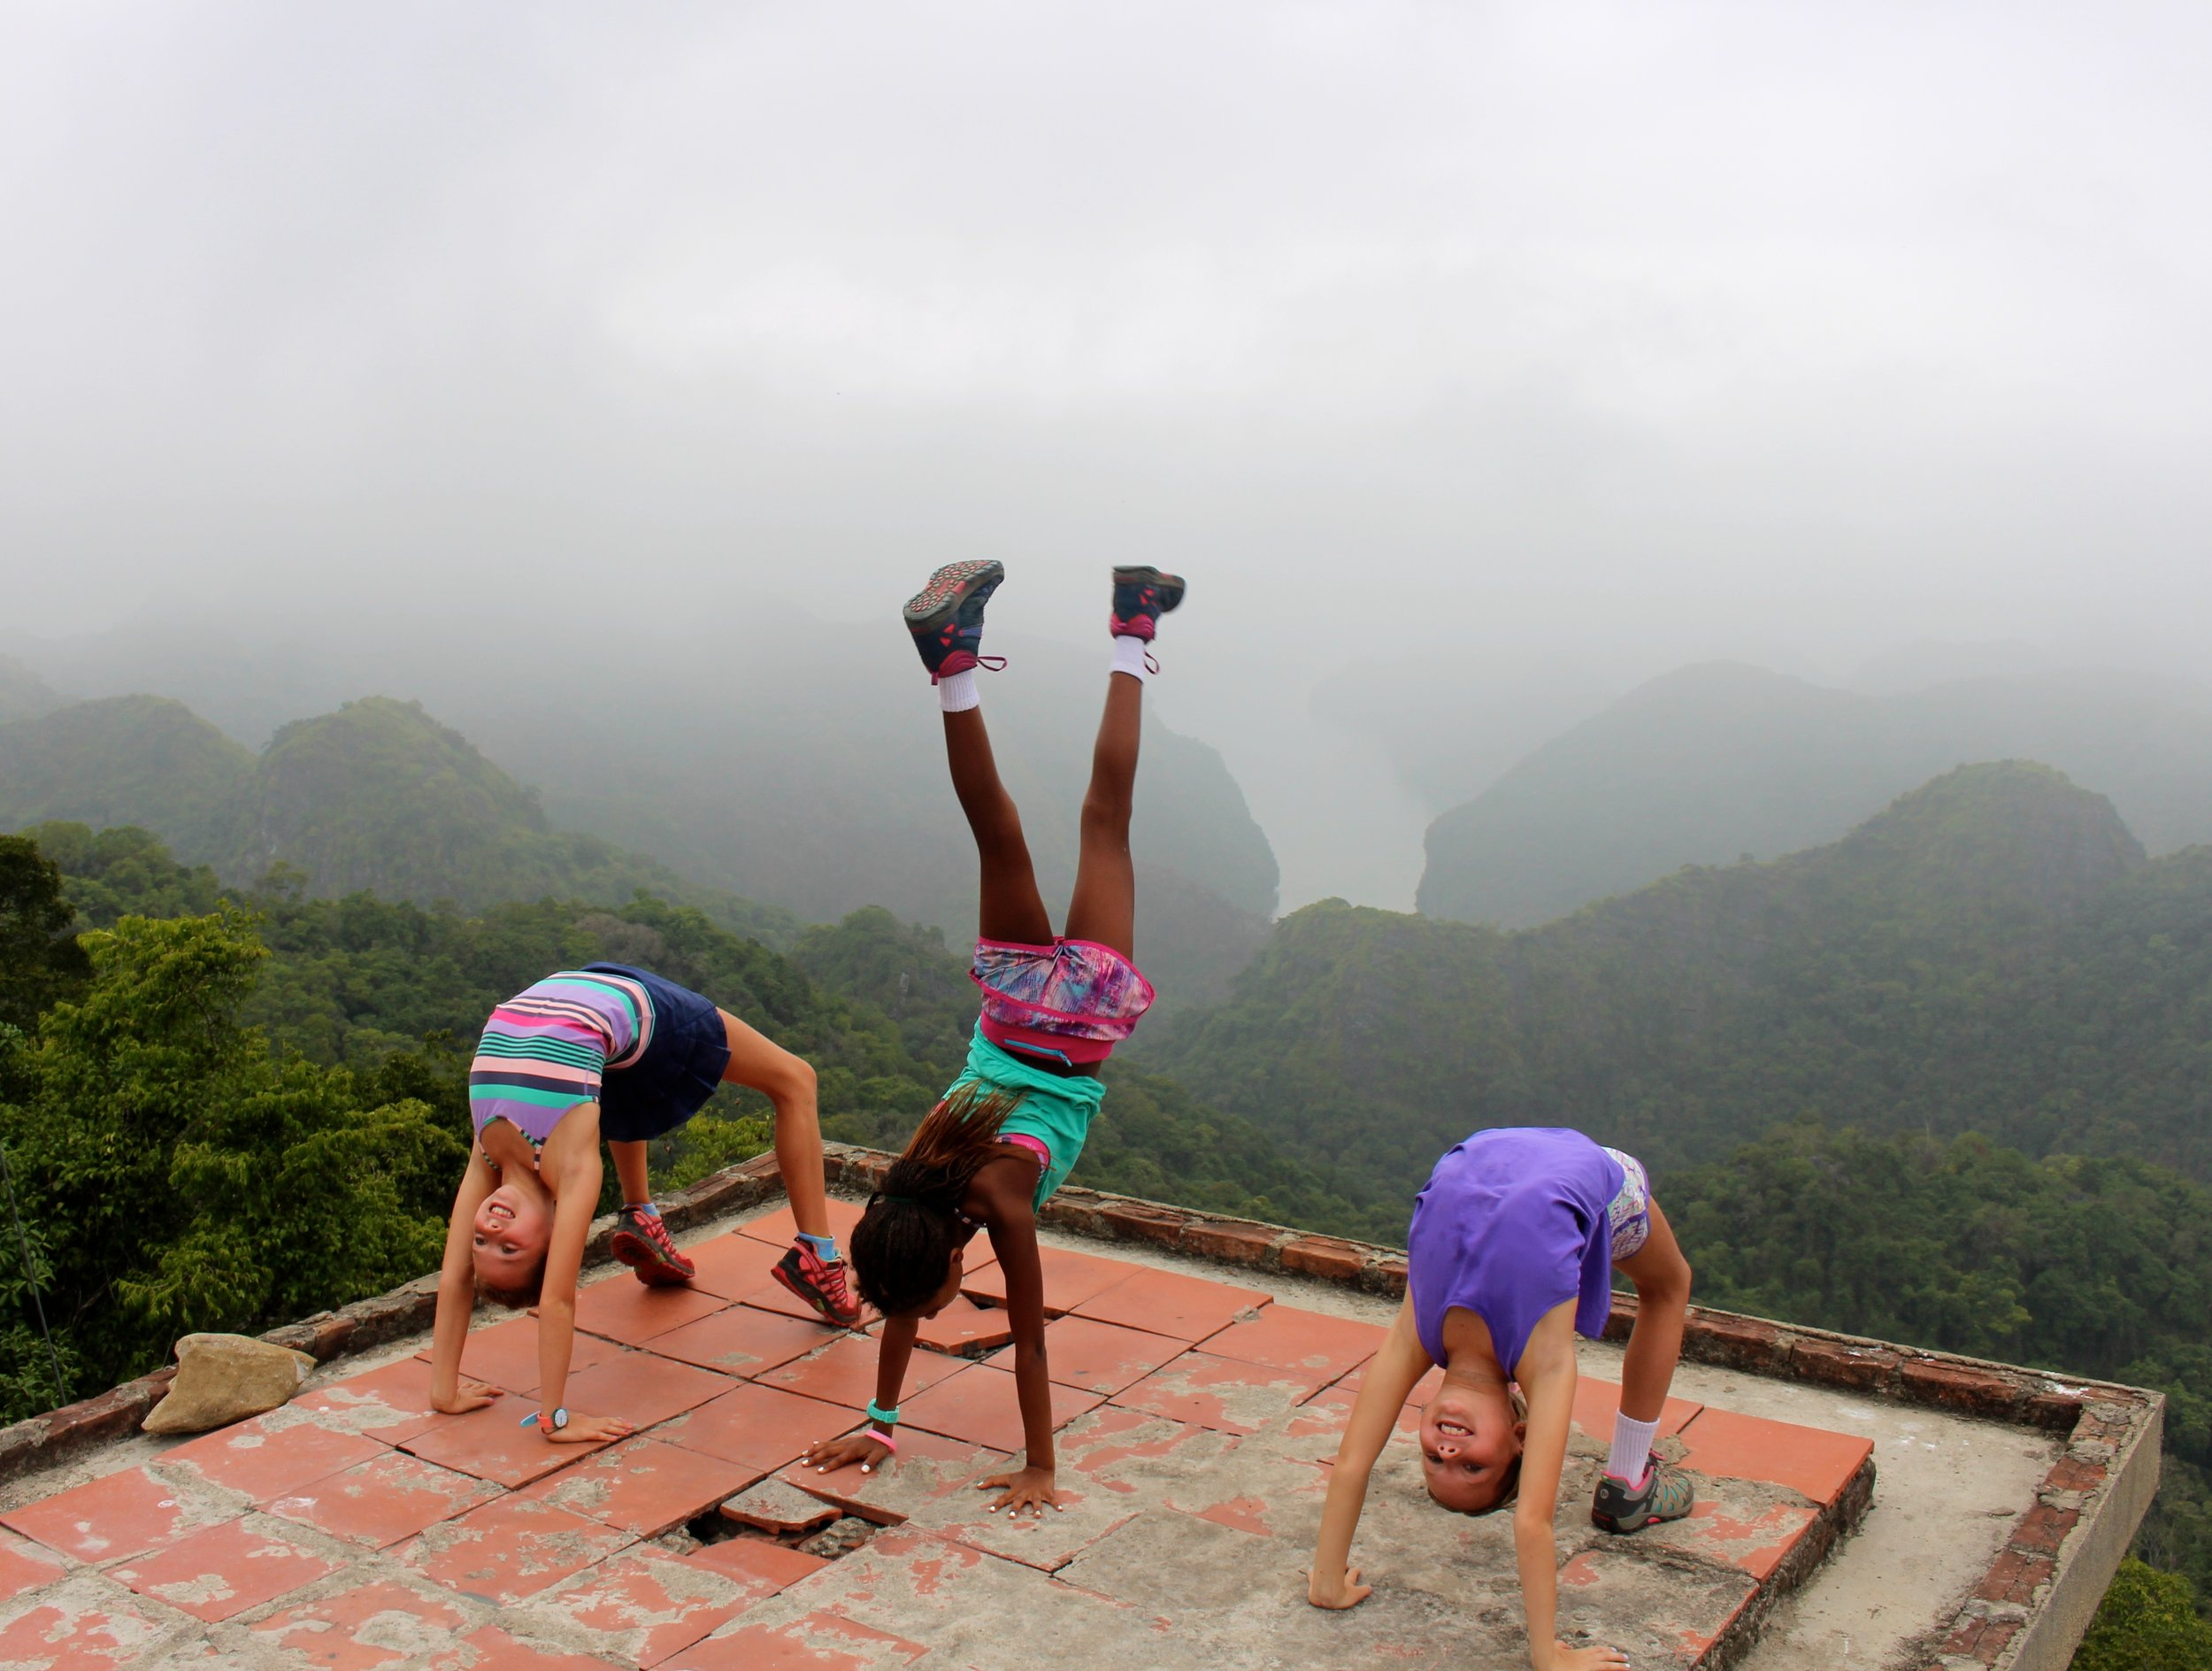 """After a 3 hour hike just shy of 10 miles, climbing limestone rock and thru the jungle, the girls were """"flipping out"""" and """"bending over backwards"""" that they made it to the peak!!!!These 3 strong girls led the way and amazed our local guide."""